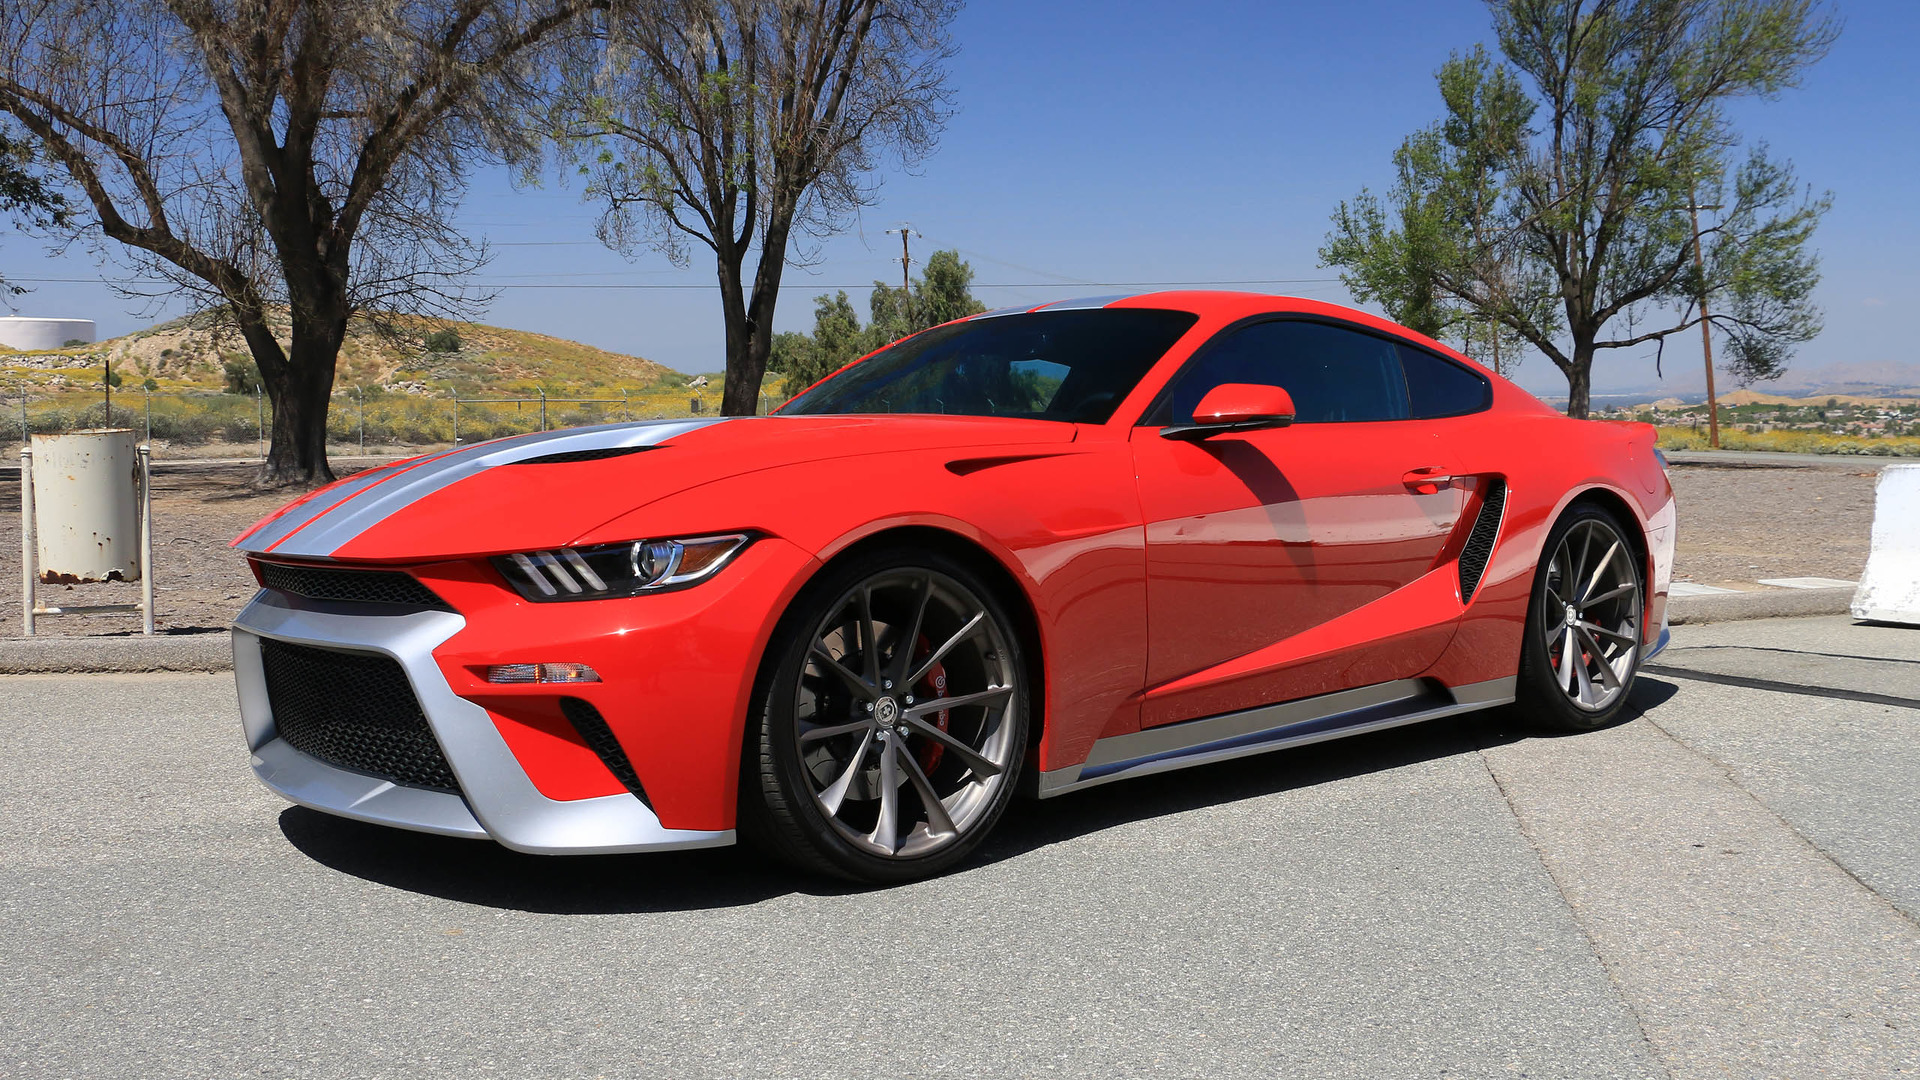 2015 Mustang Gt 0 60 >> Ford Mustang Gt Modified By Zero To 60 Designs First Drive